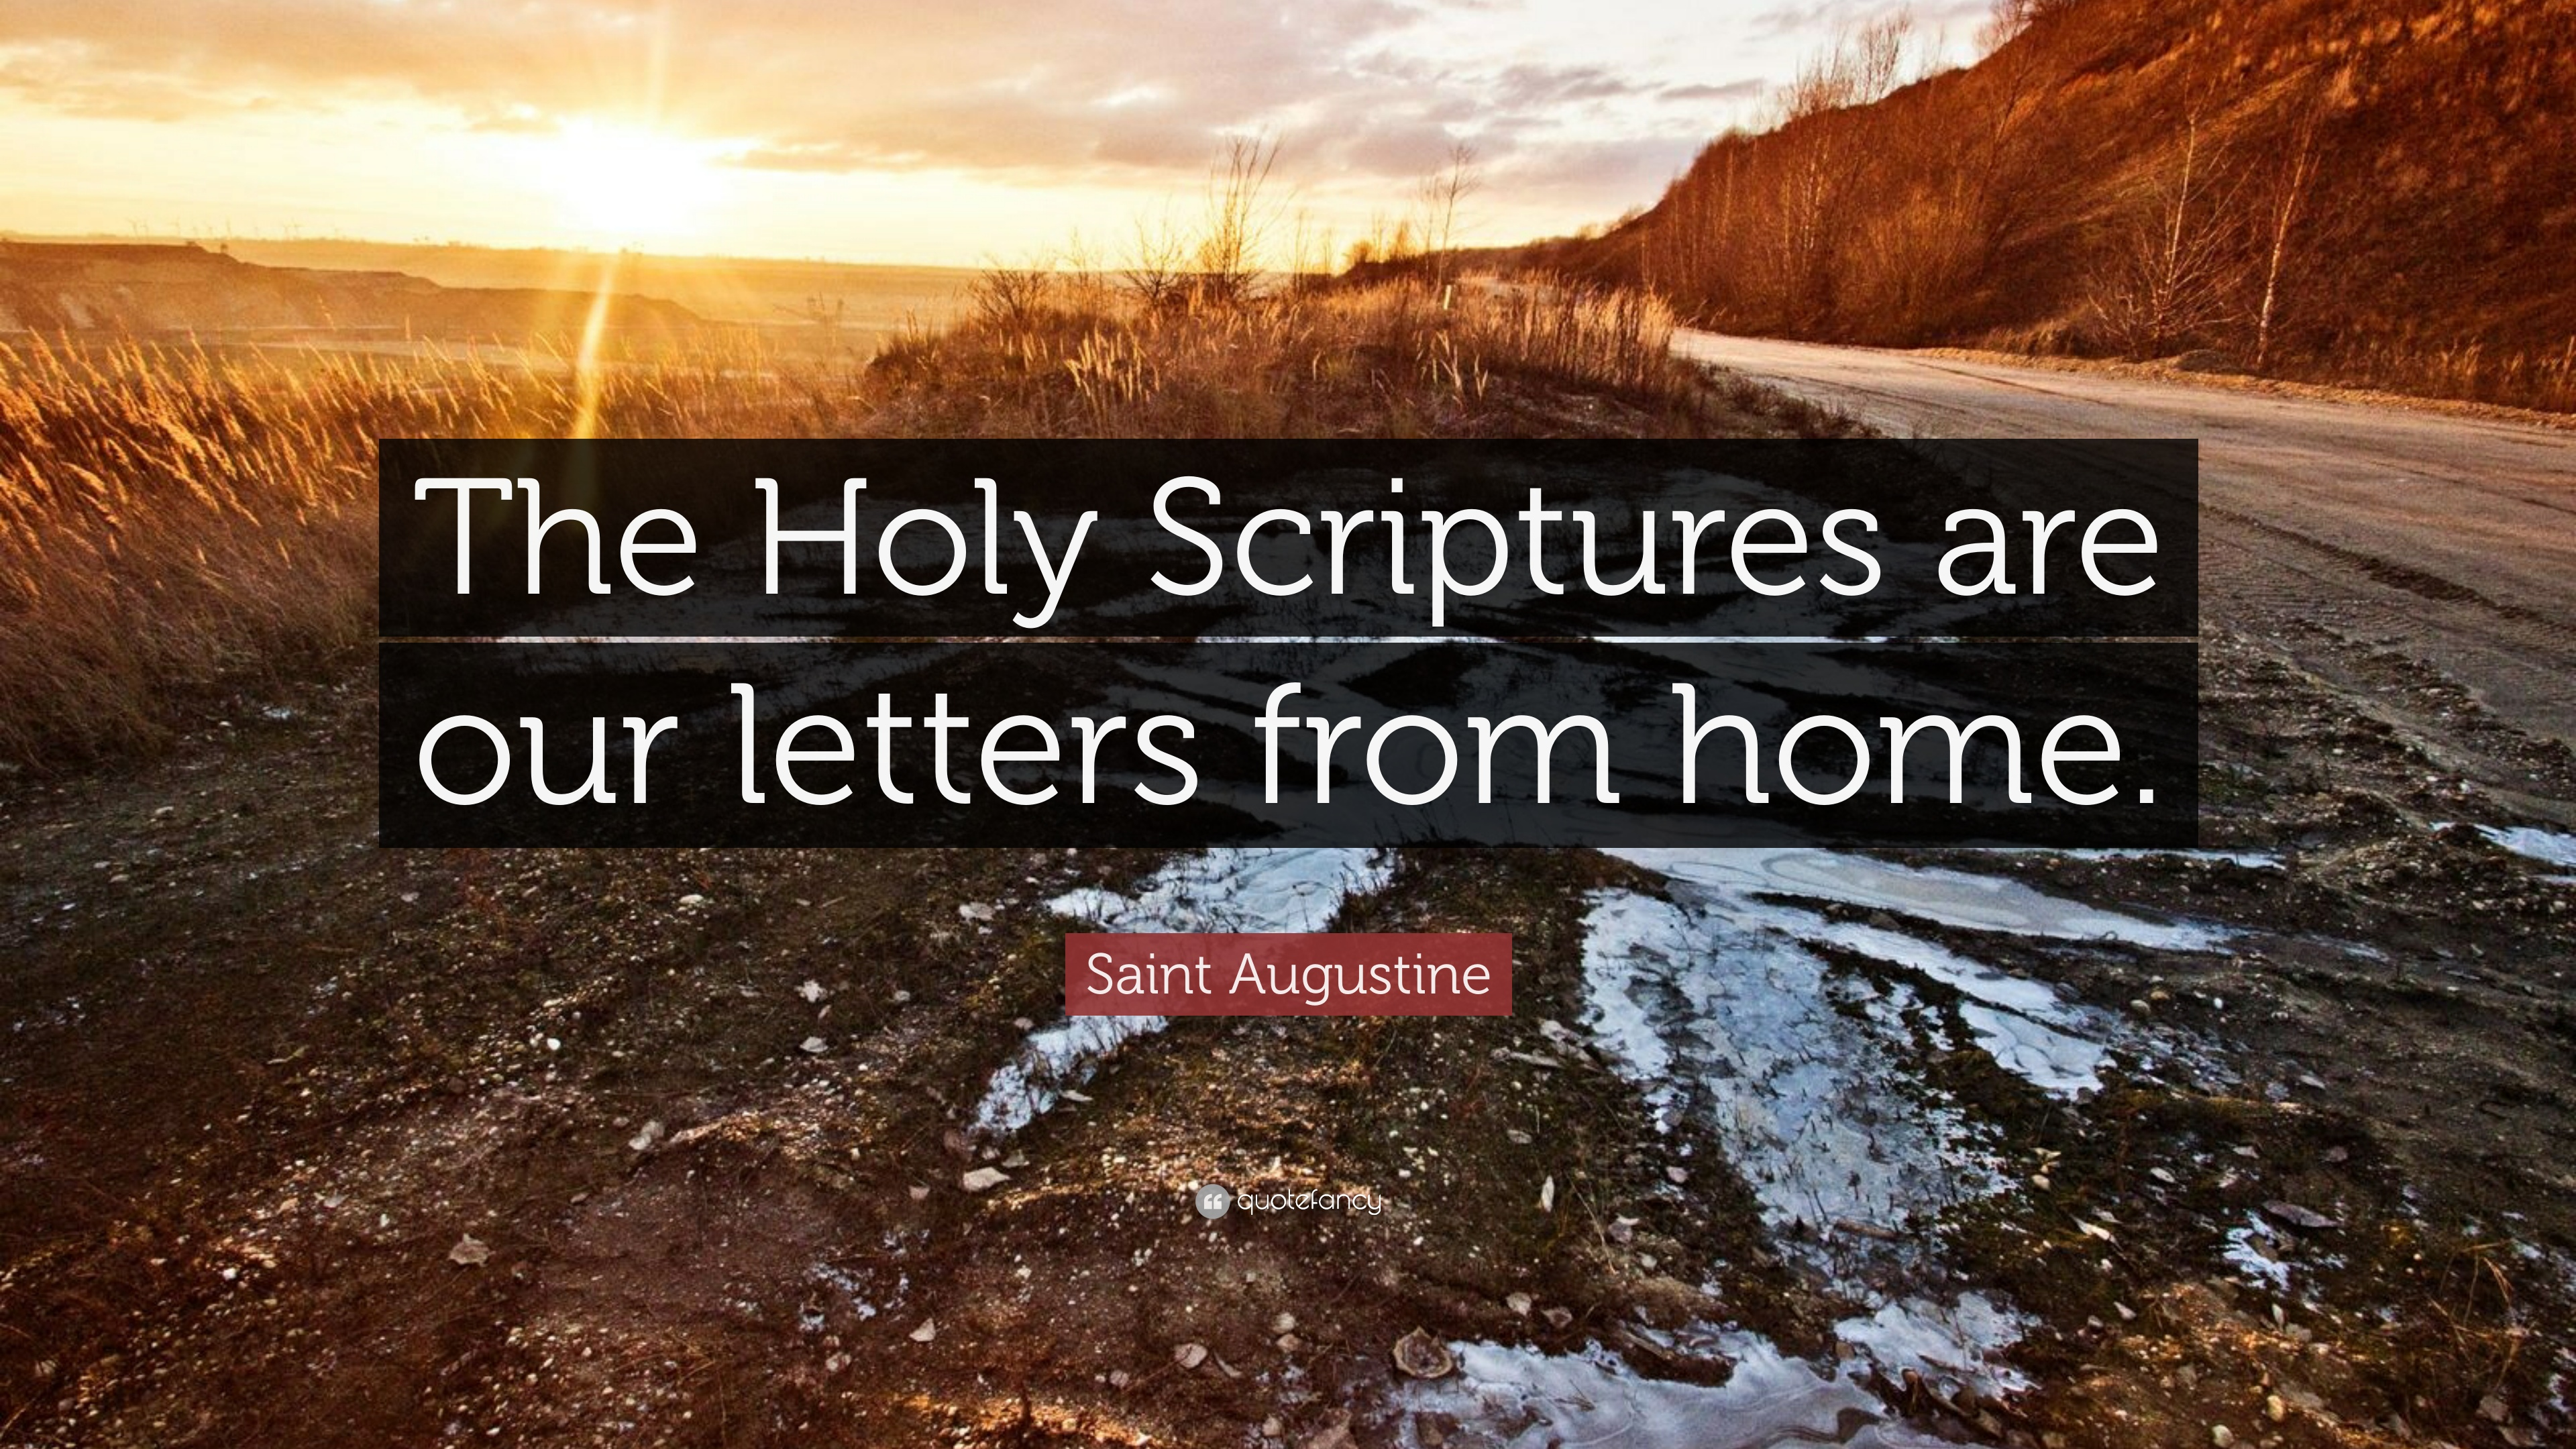 saint augustine quote the holy scriptures are our letters from home